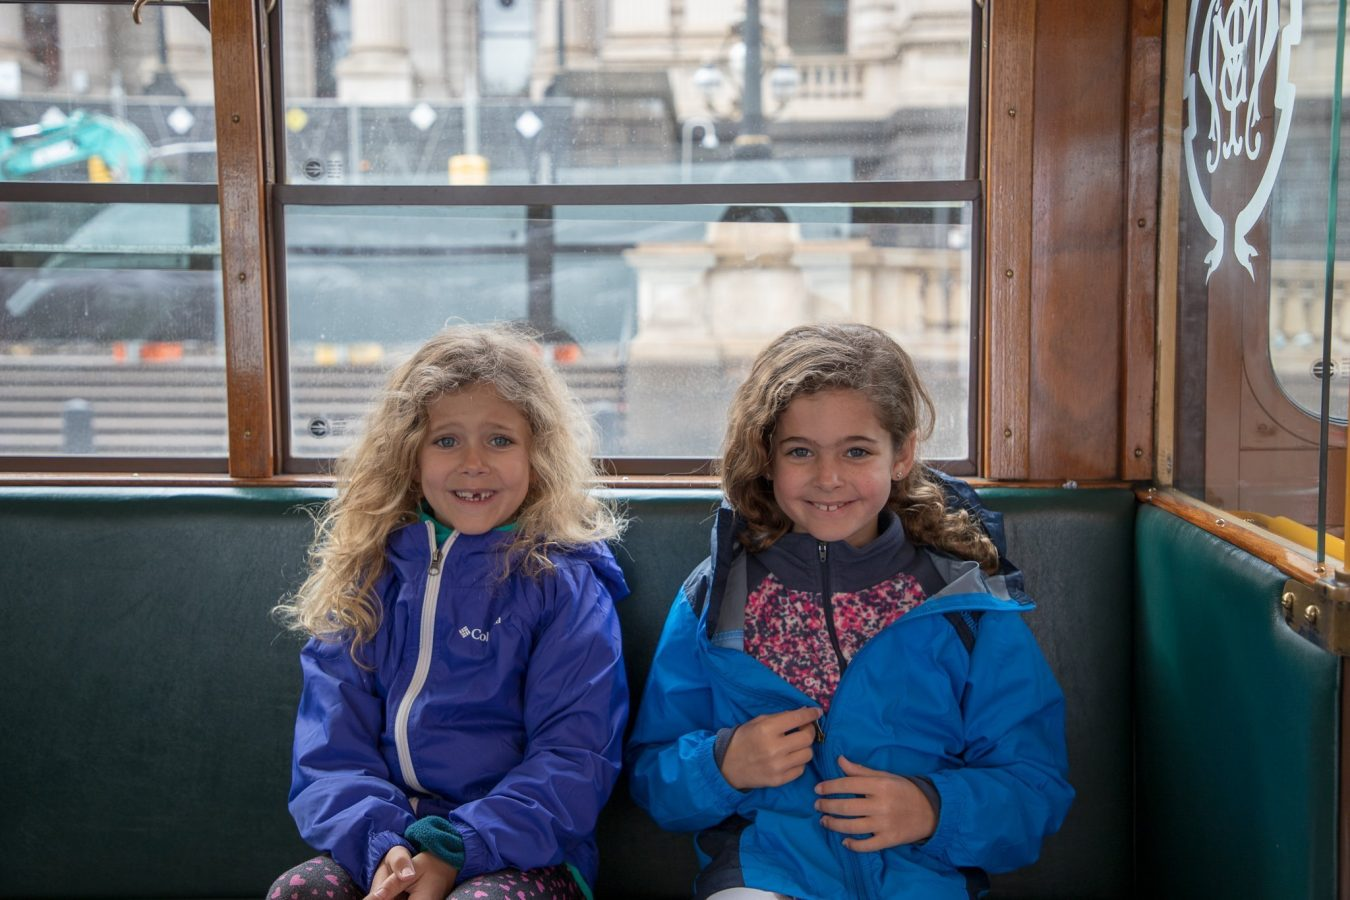 Riding the Trolly in Melbourne